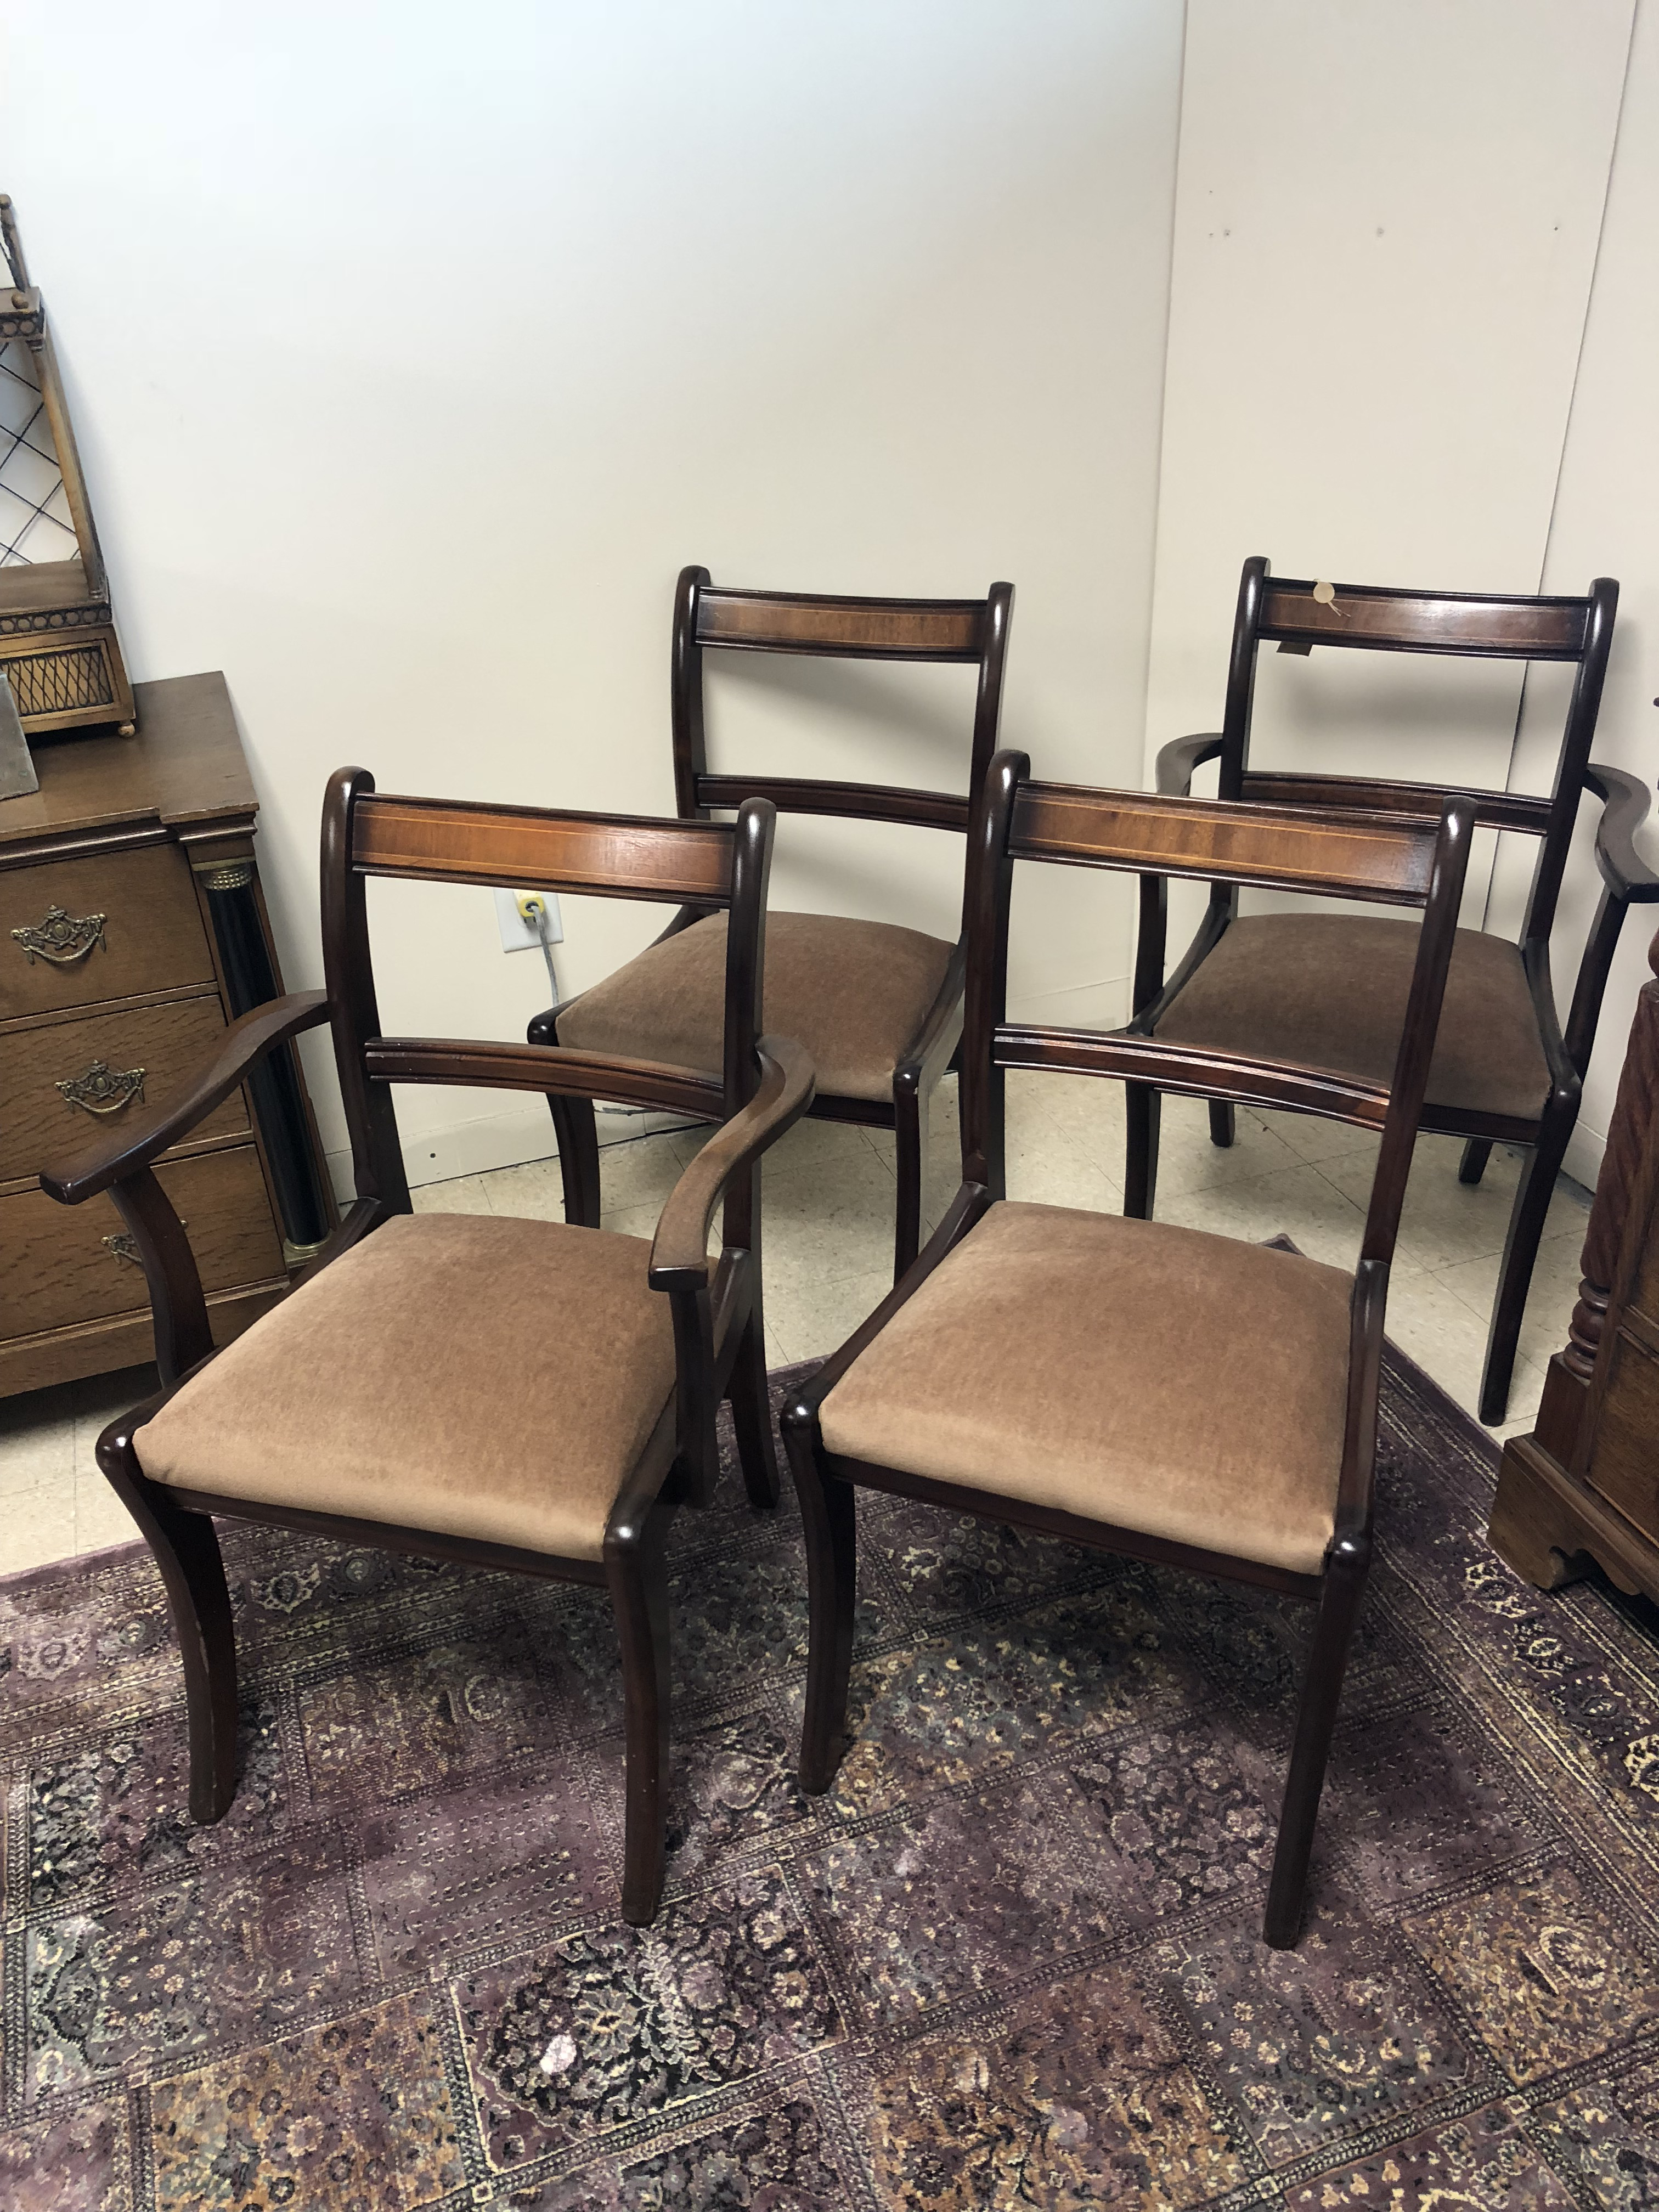 Set Of 4 Antique Mahogany With Walnut Inlay Dining Chairs That Includes: 2  Armchairs And